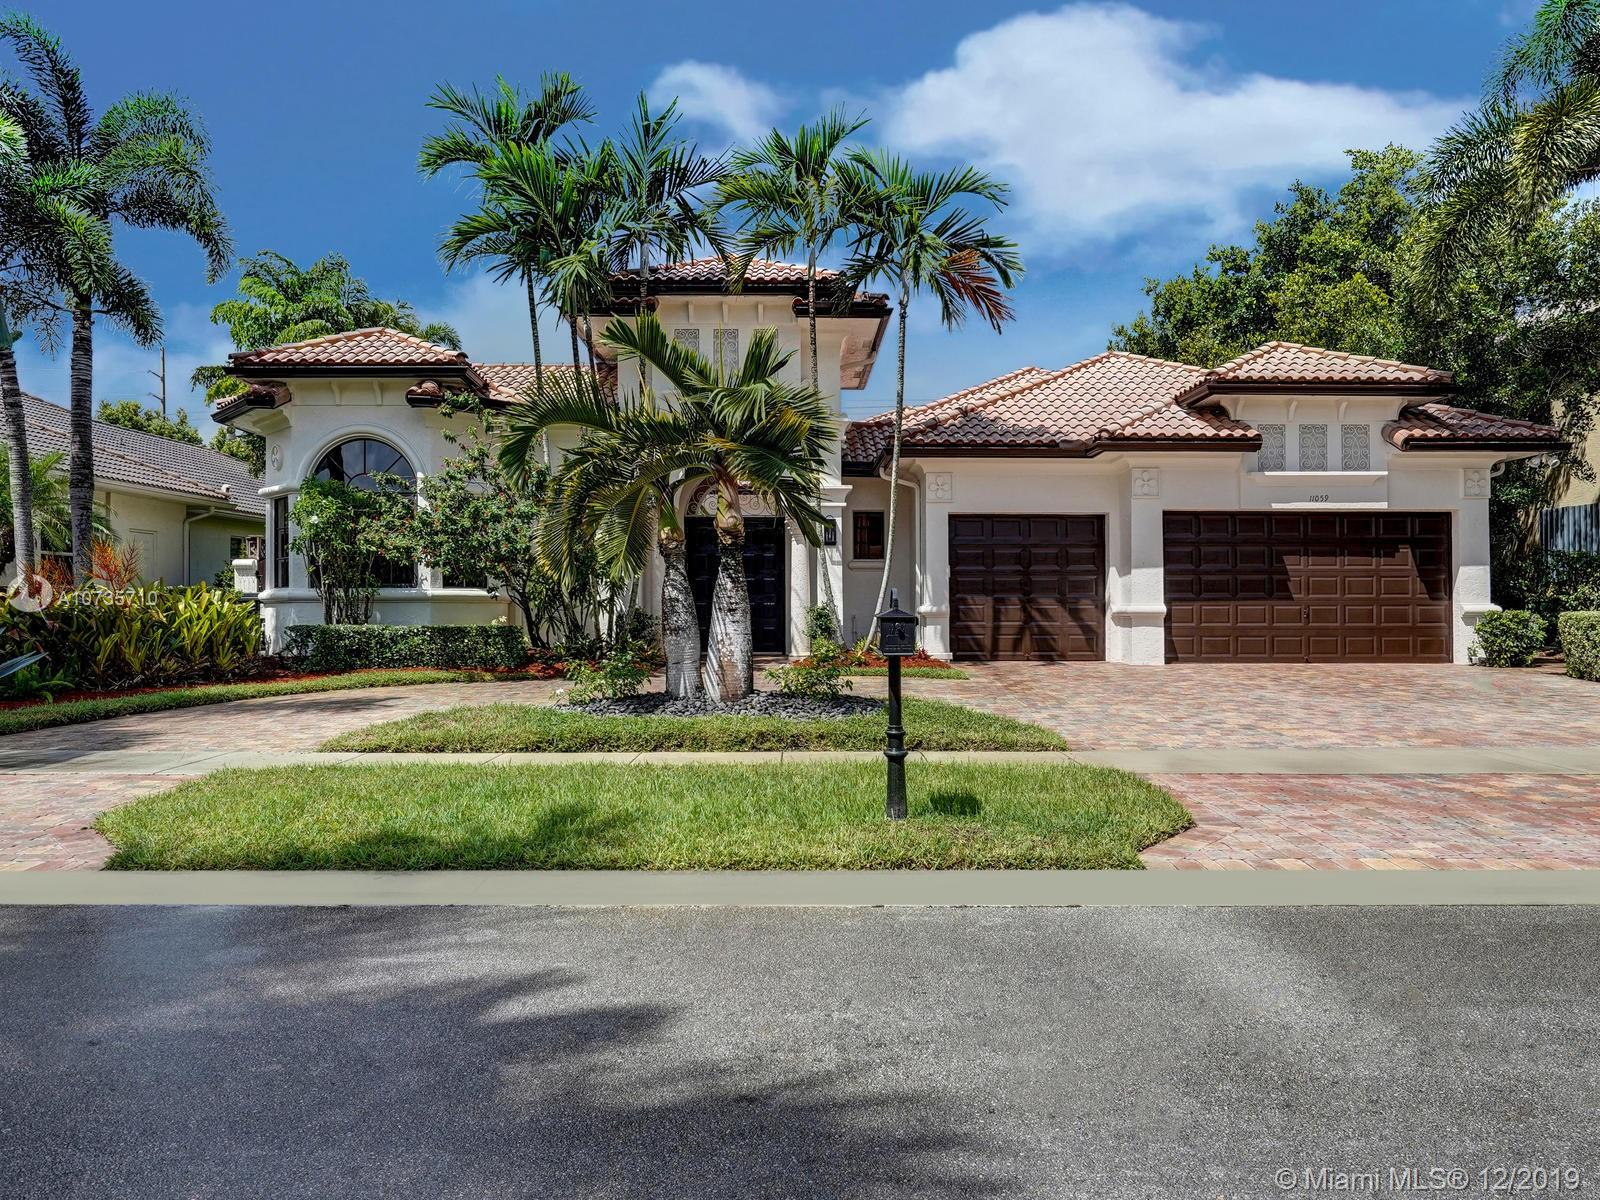 11059 Canary Island Ct, Plantation, FL 33324